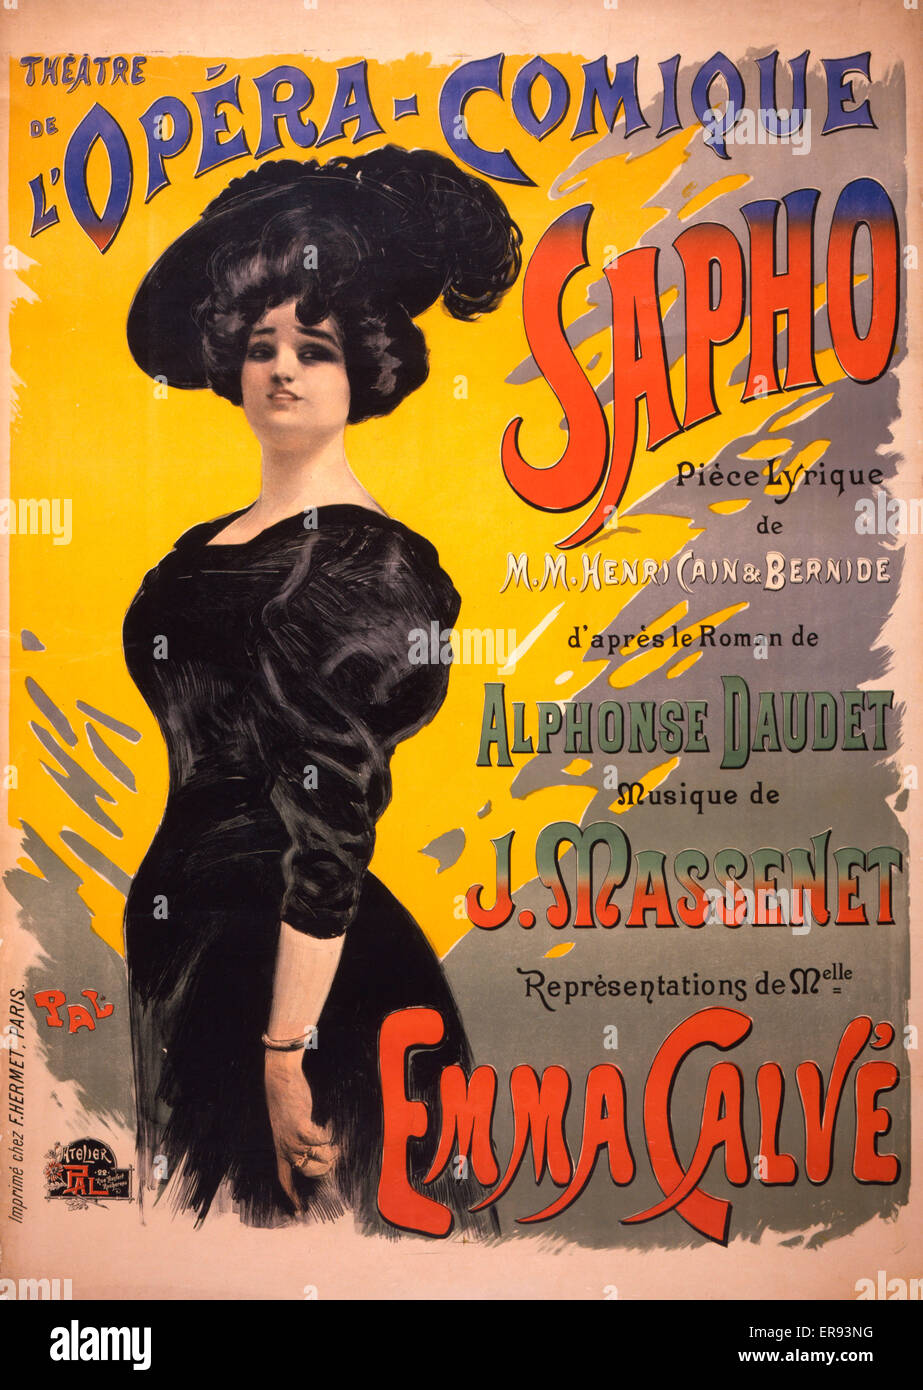 Sapho: Theatre de l'Opera-Comique . Performing arts poster for a performance of a comic opera by Henri Cain - Stock Image